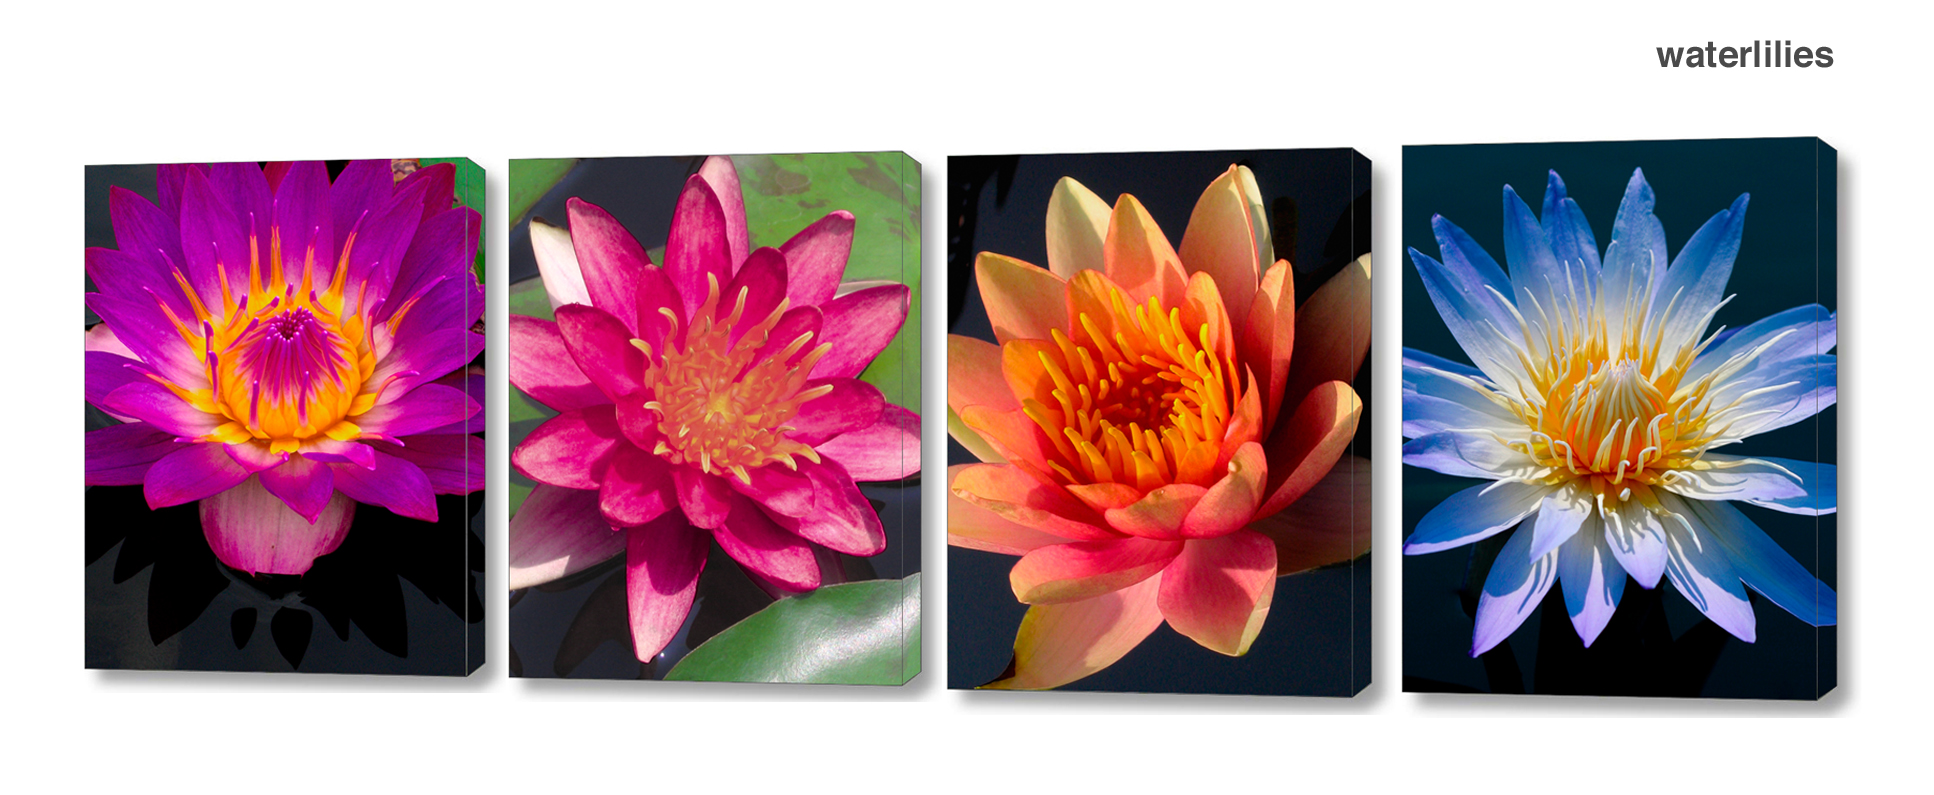 water lily series - Floral Series Wall Decor Macro Photography Matted & Giclée Canvas Prints